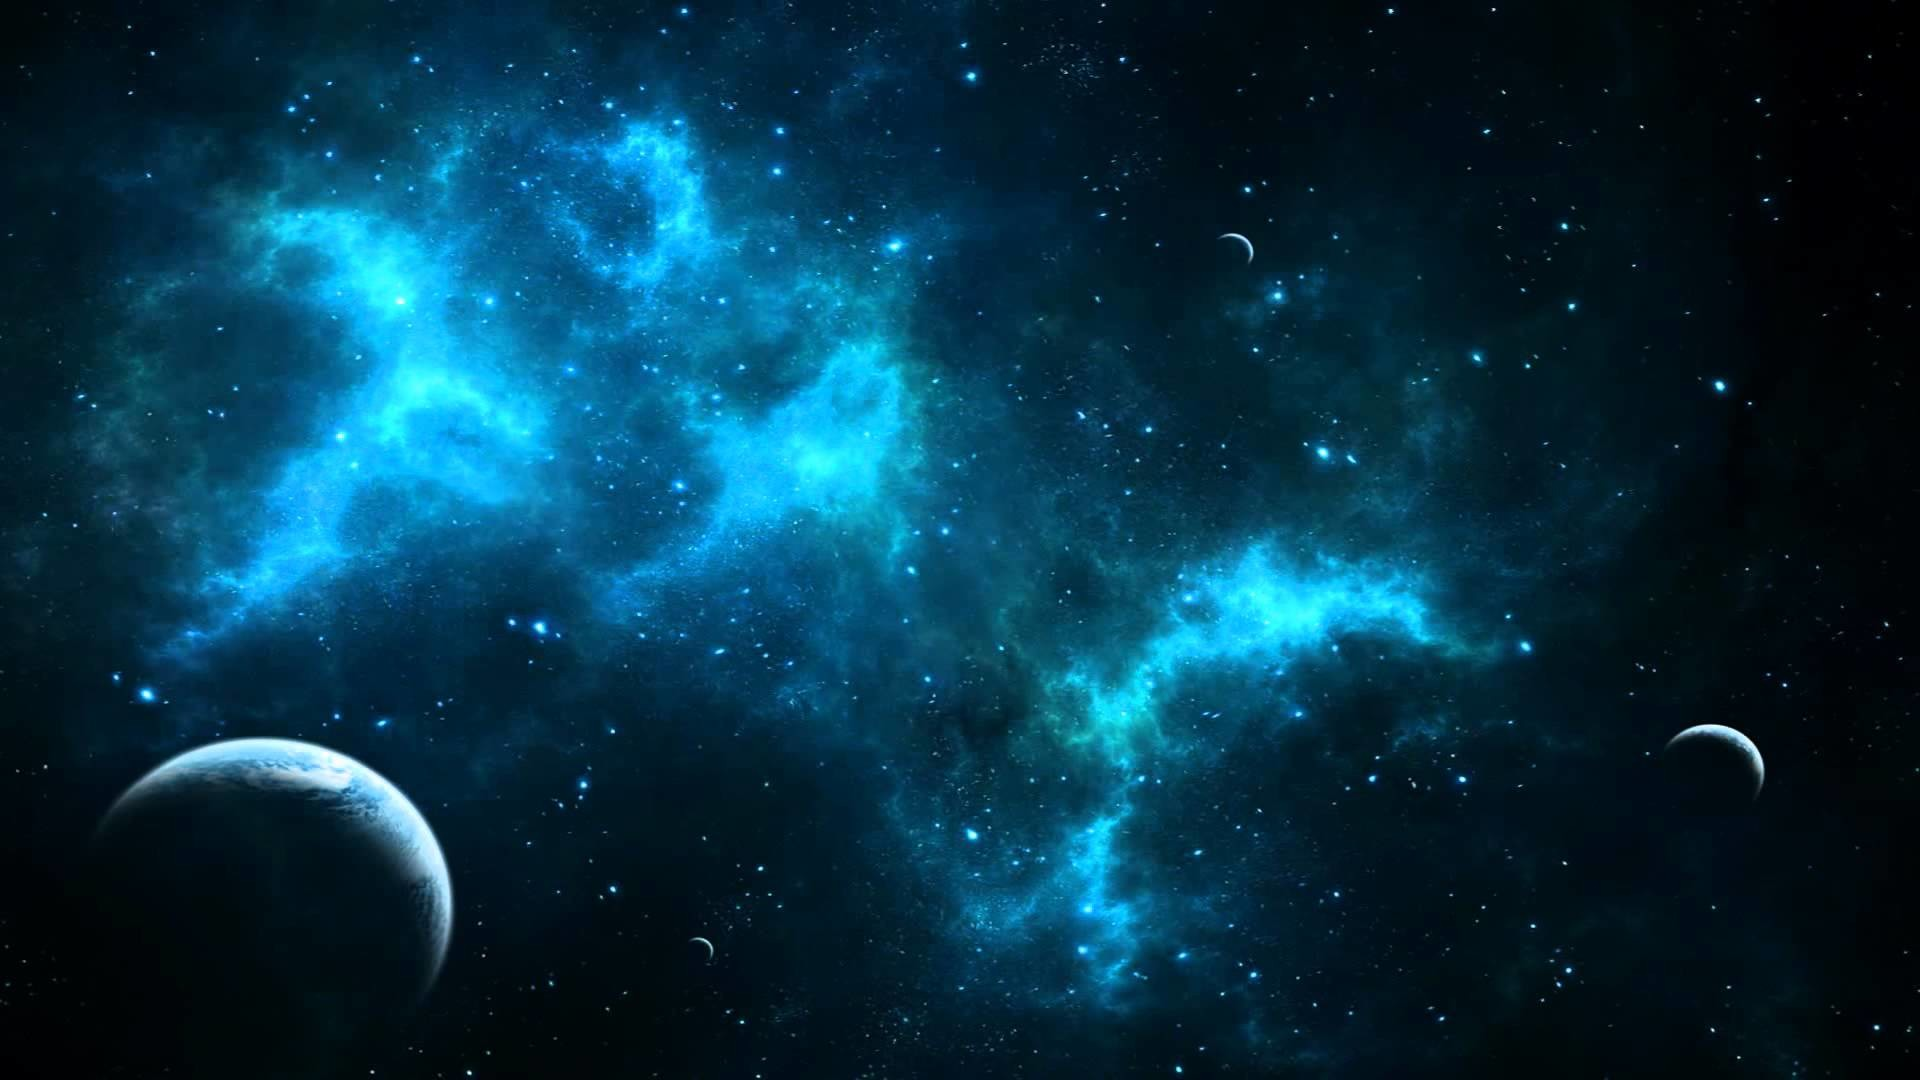 Wallpapers and screensavers space 70 images 1920x1080 live wallpapers and screensavers for pc voltagebd Image collections